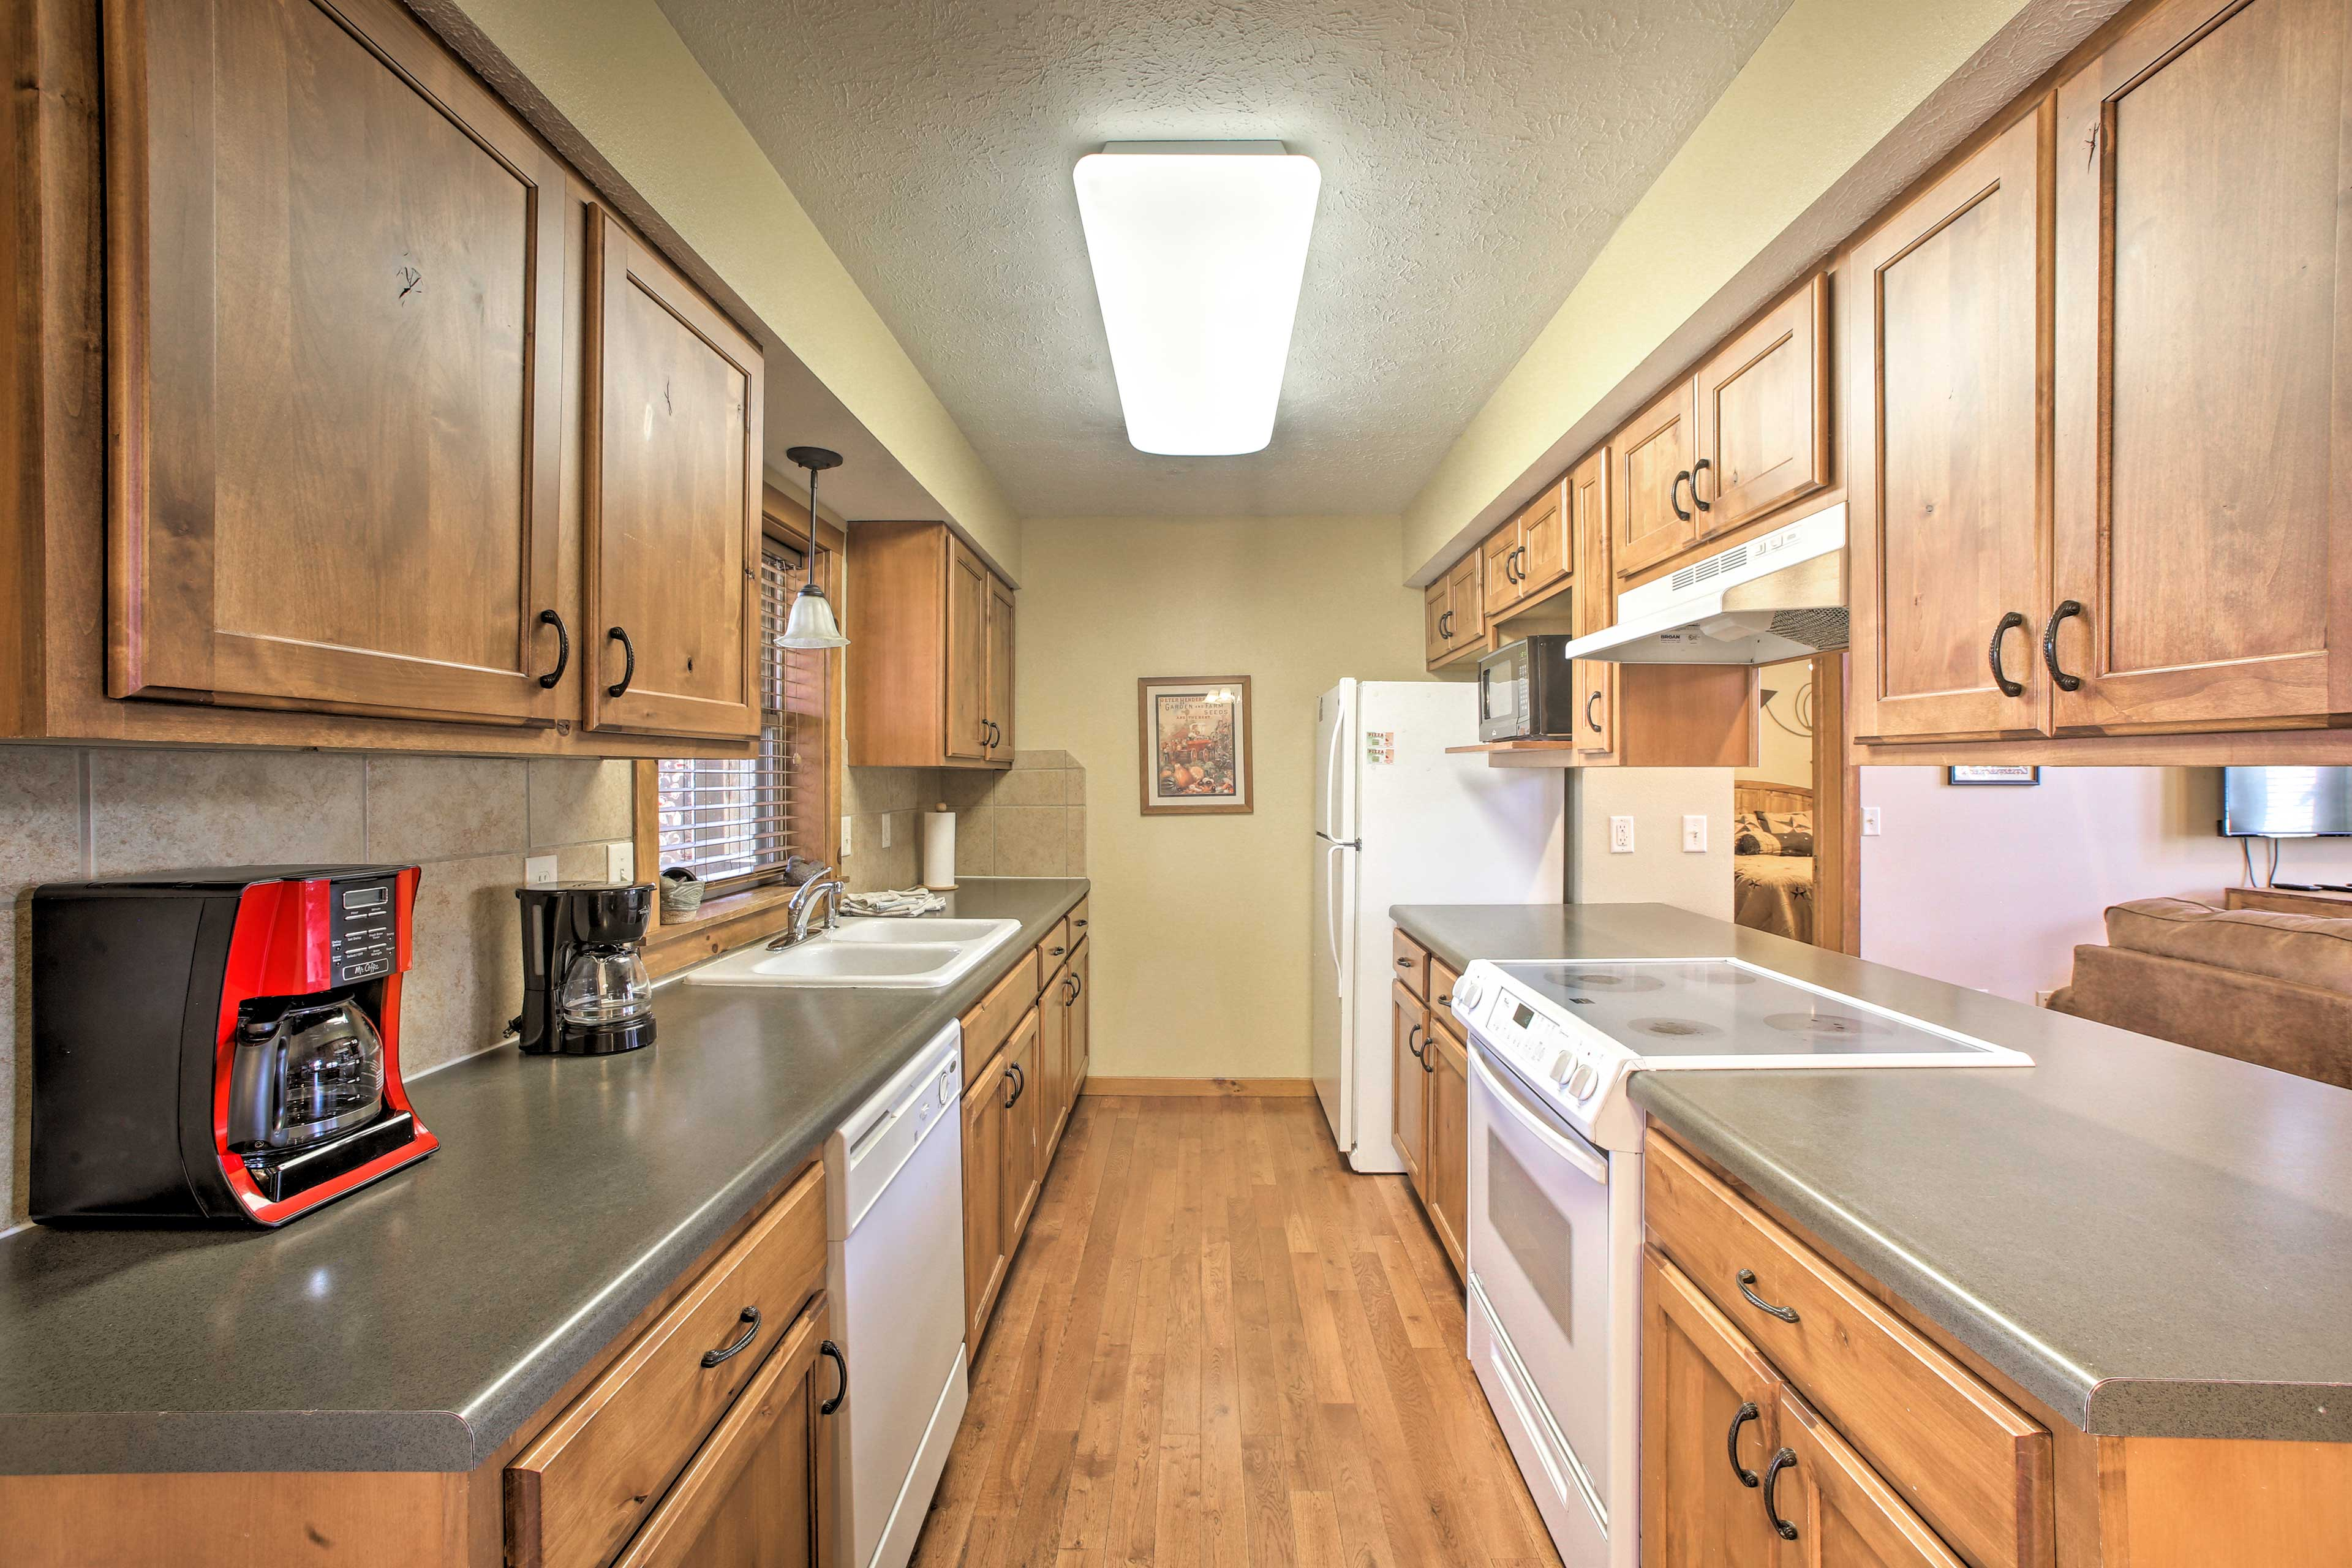 The kitchen is fully equipped with all the cookware & appliances you'll need!